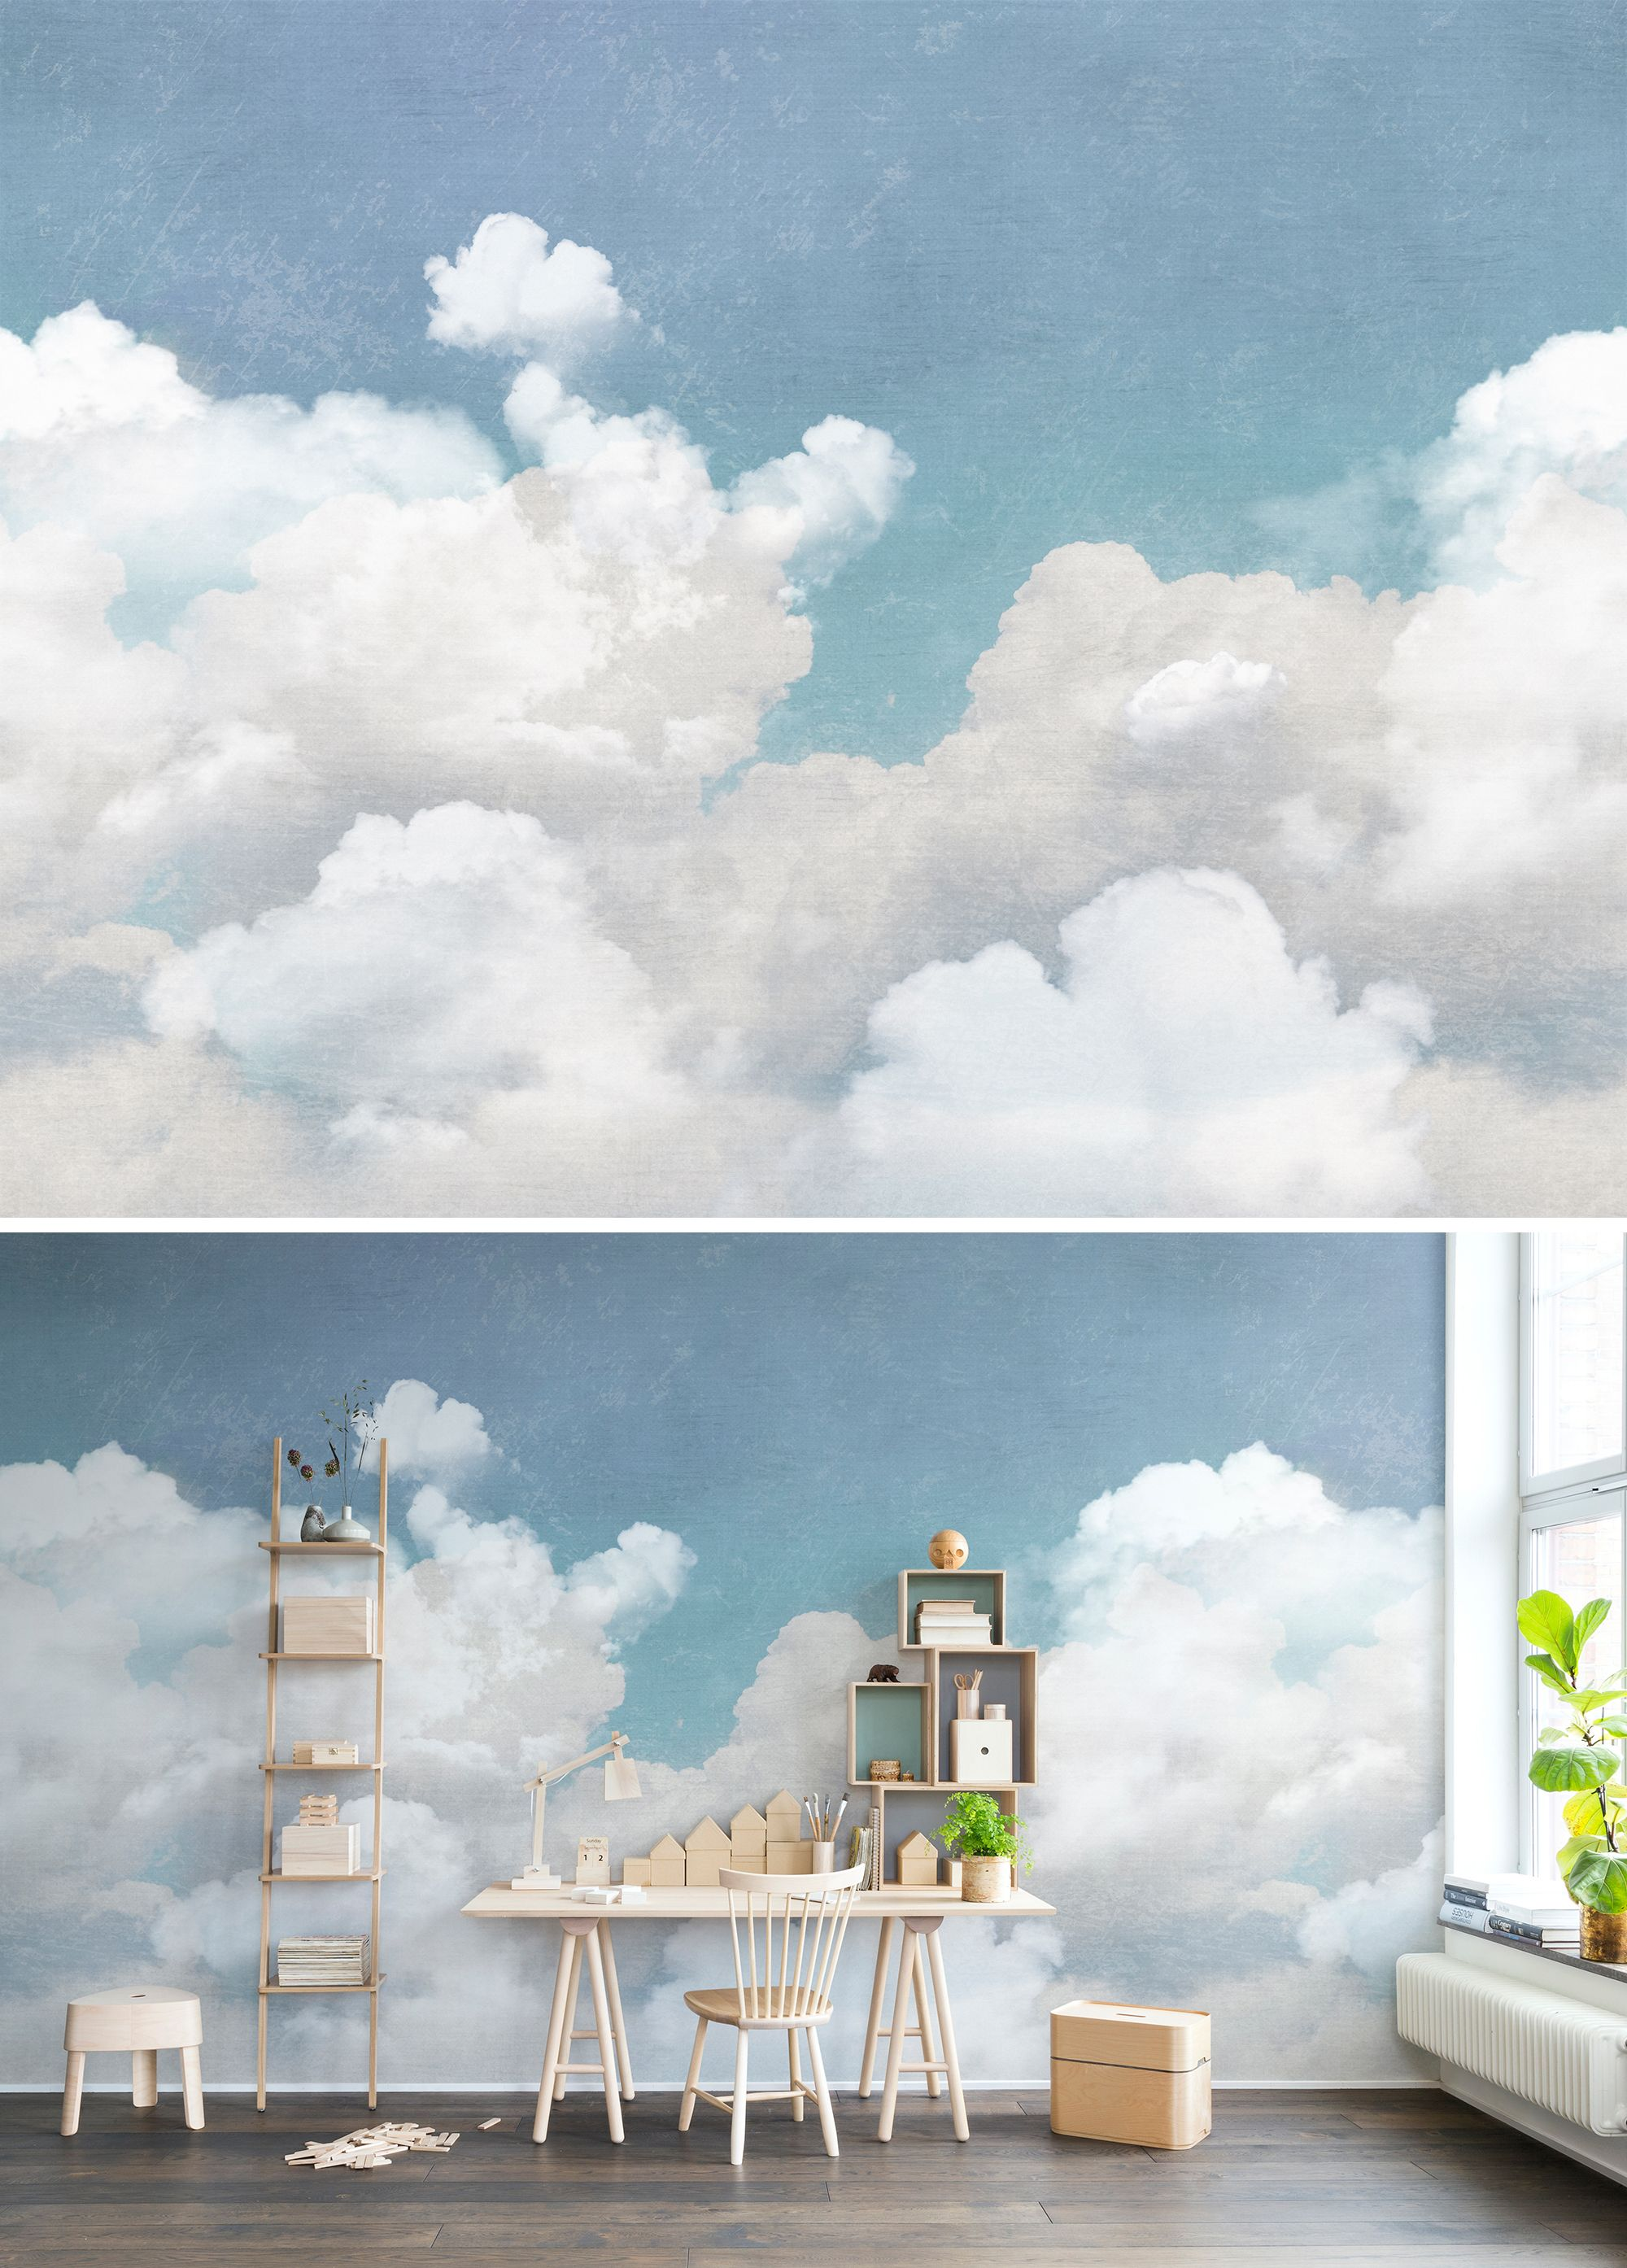 Cloud Wallpaper For Bedroom Wall Mural Wallpaper Blue Turquoise Dream Sky